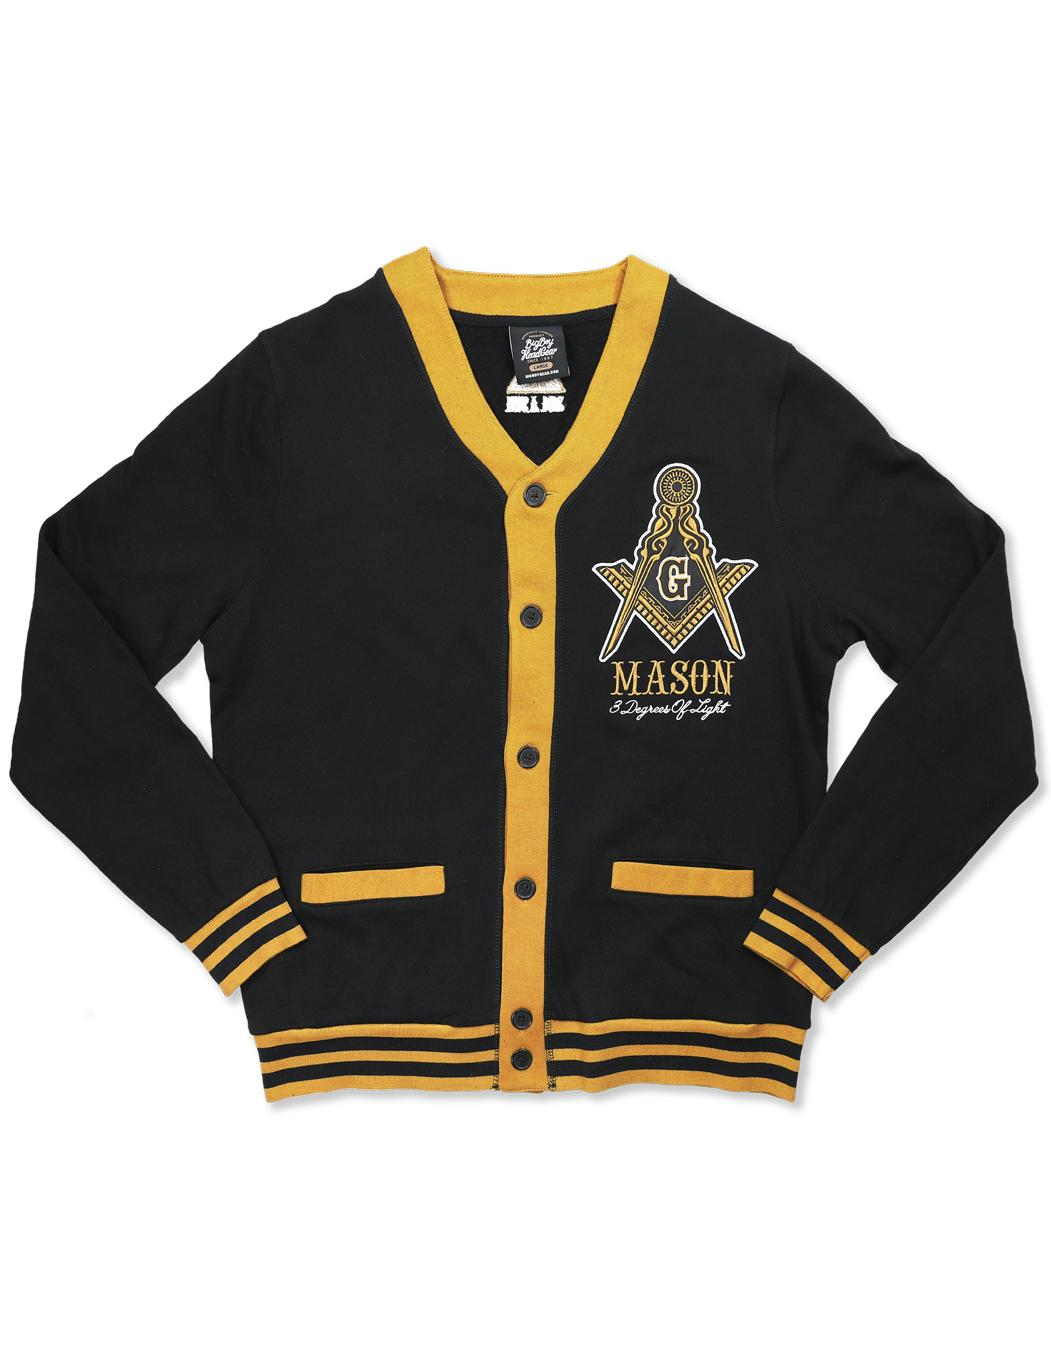 Freemason apparel Light Weight cardigan